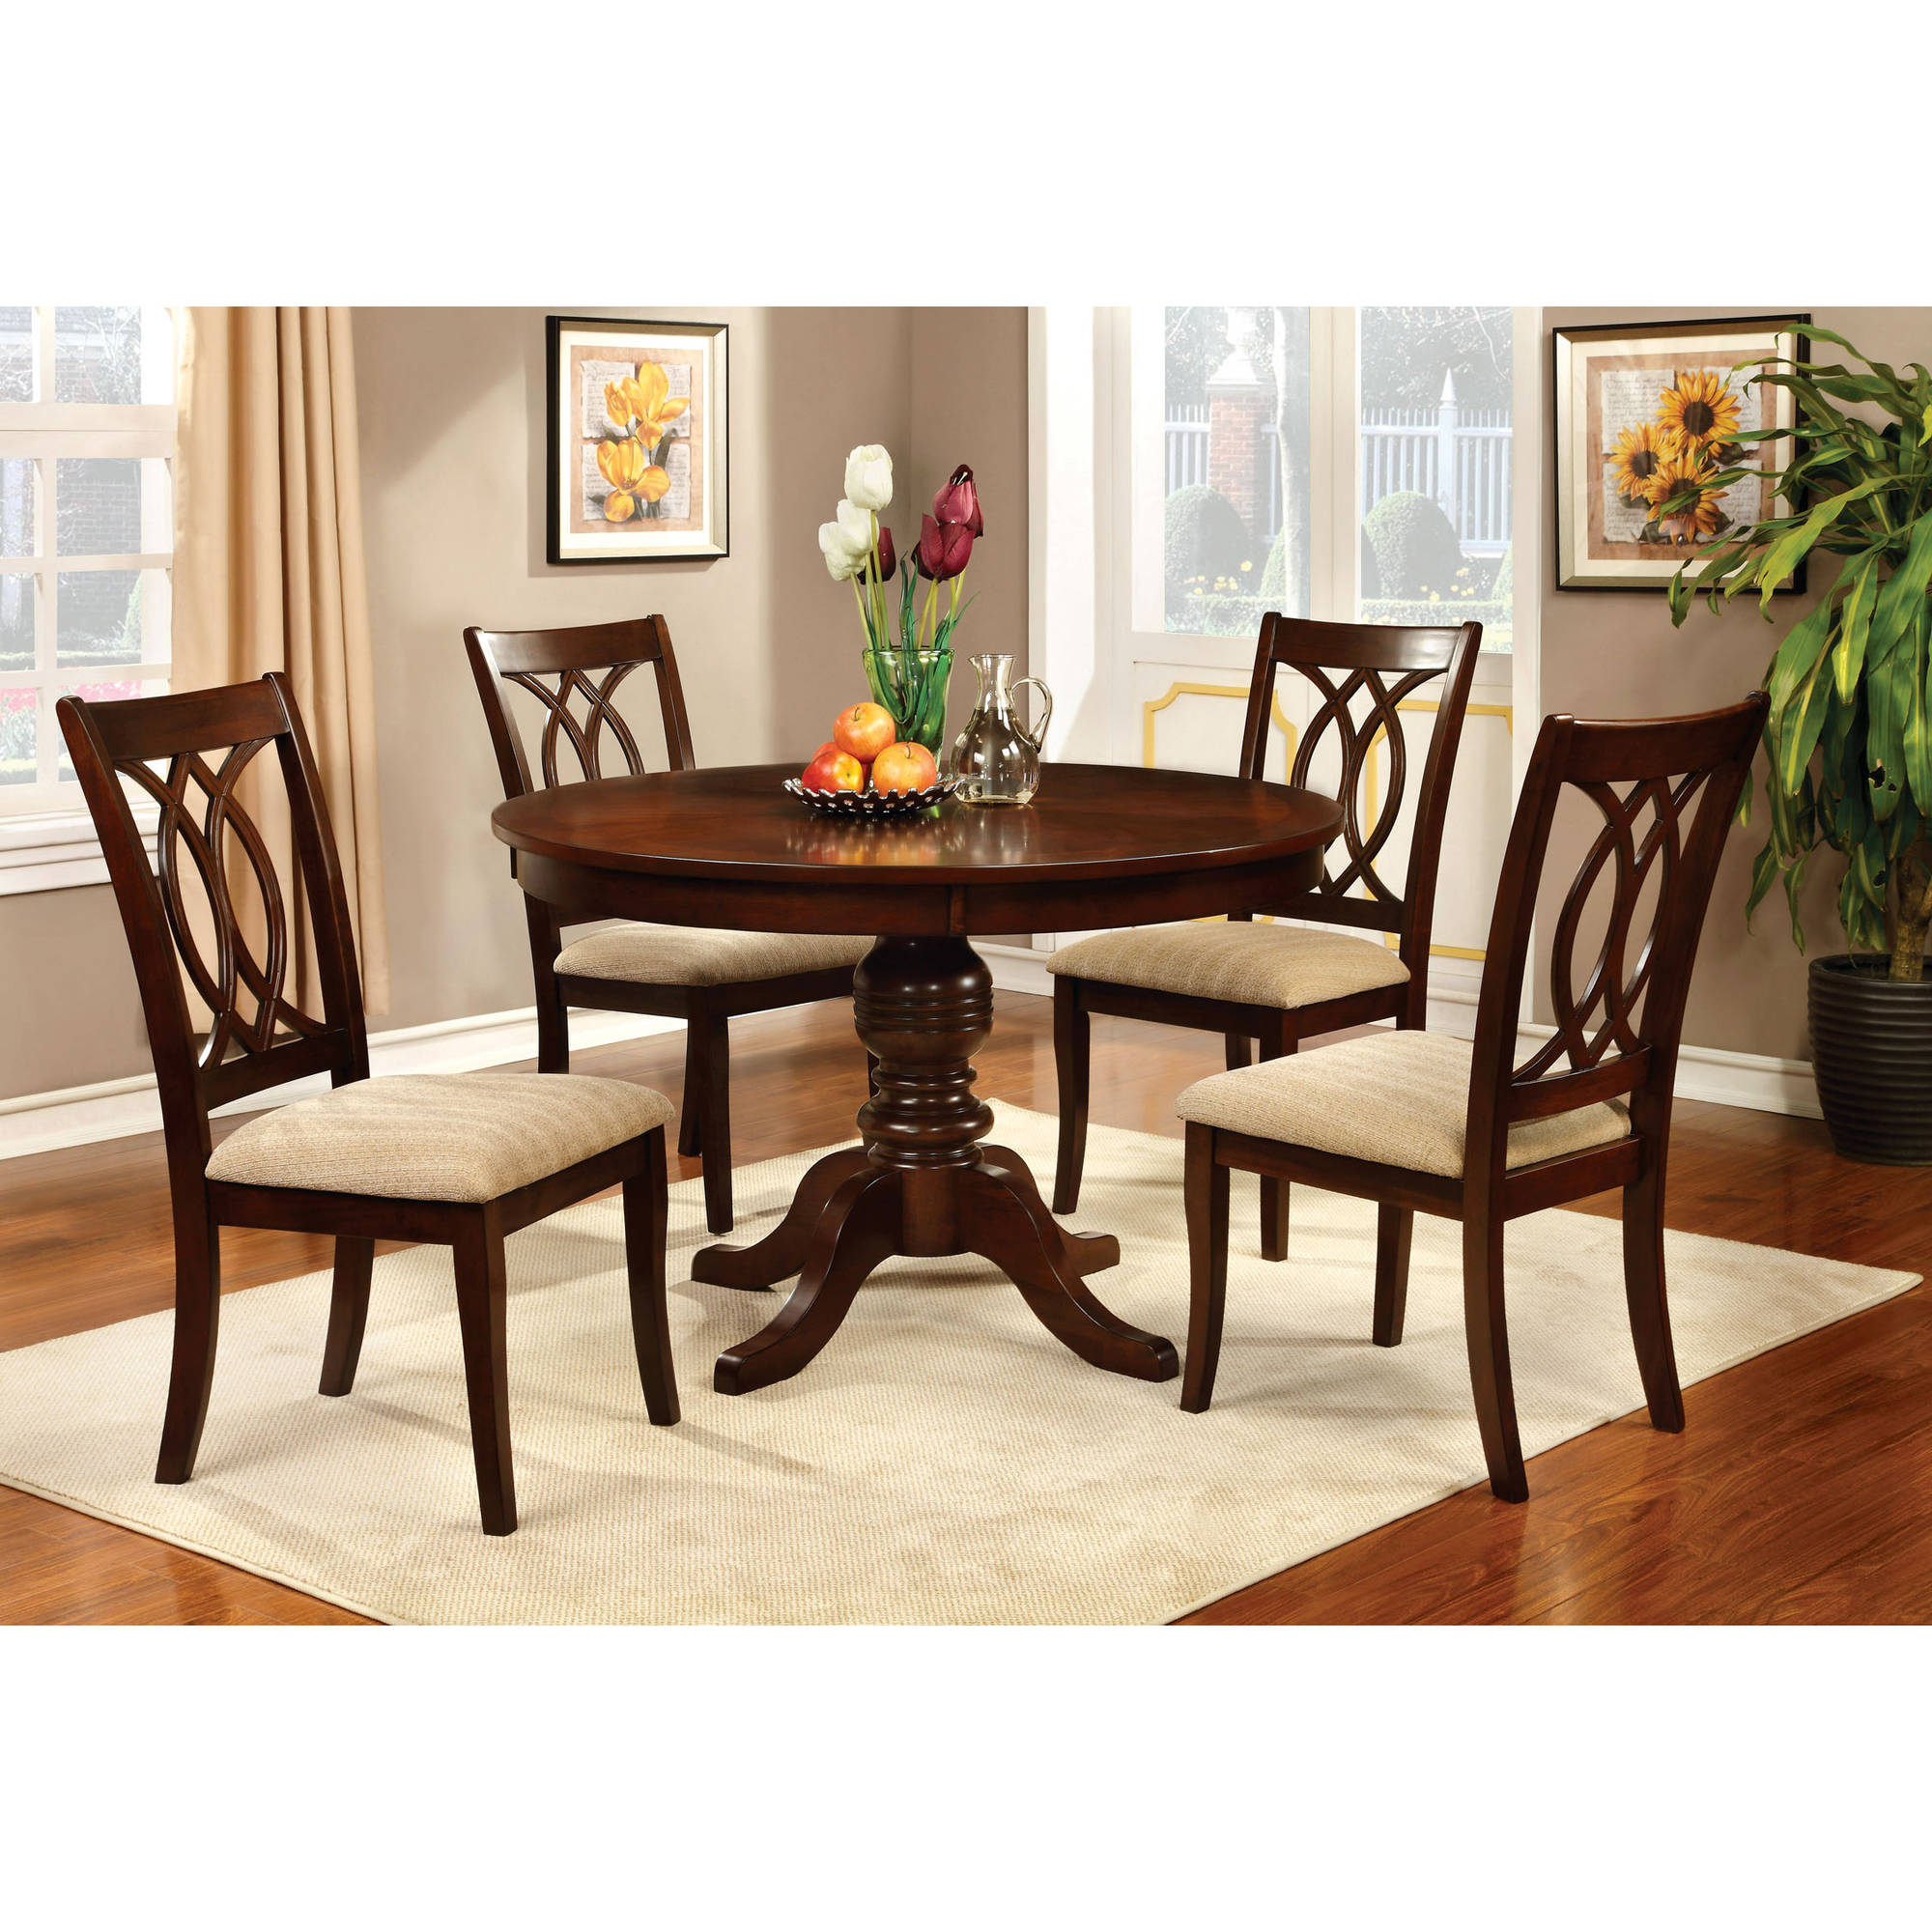 Furniture of America Goddard Transitional 5-Piece Round Dining Set, Brown Cherry